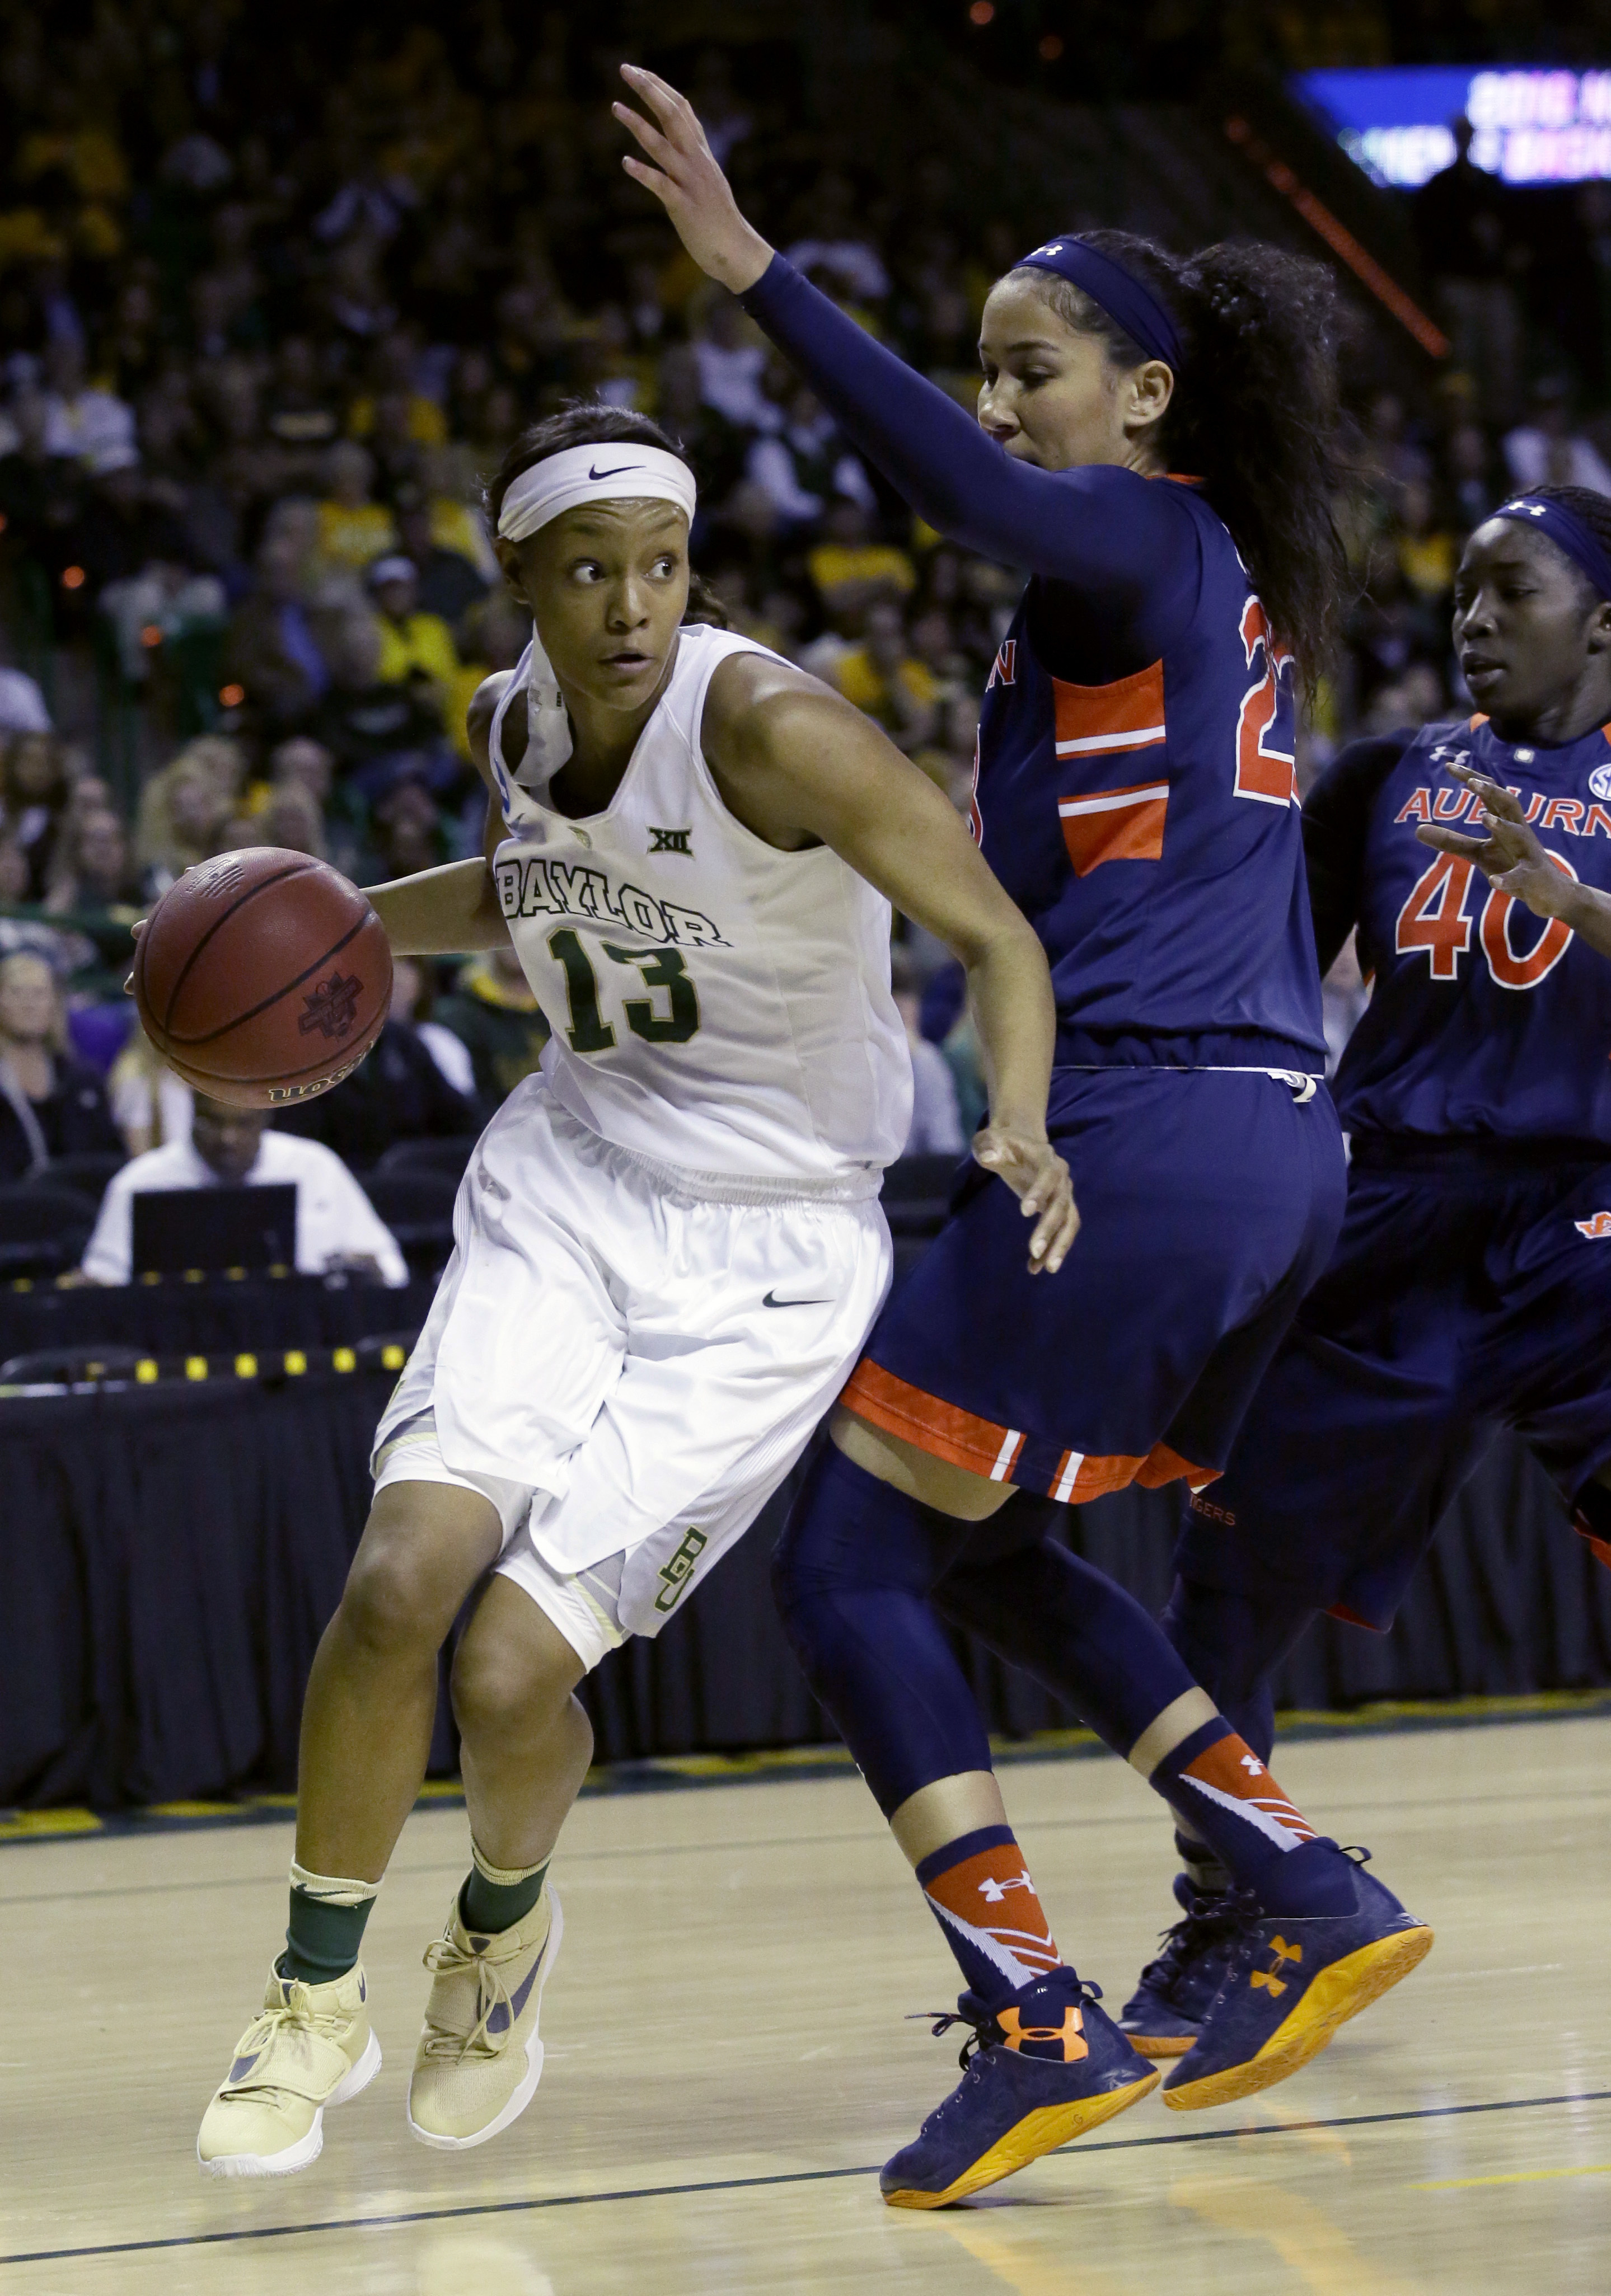 Baylor forward Nina Davis (13) drives against Auburn defenders Jessica Jones (23) and Khady Dieng (40) during the first half of a second-round women's college basketball game in the NCAA Tournament Sunday, March 20, 2016, in Waco, Texas. (AP Photo/LM Oter